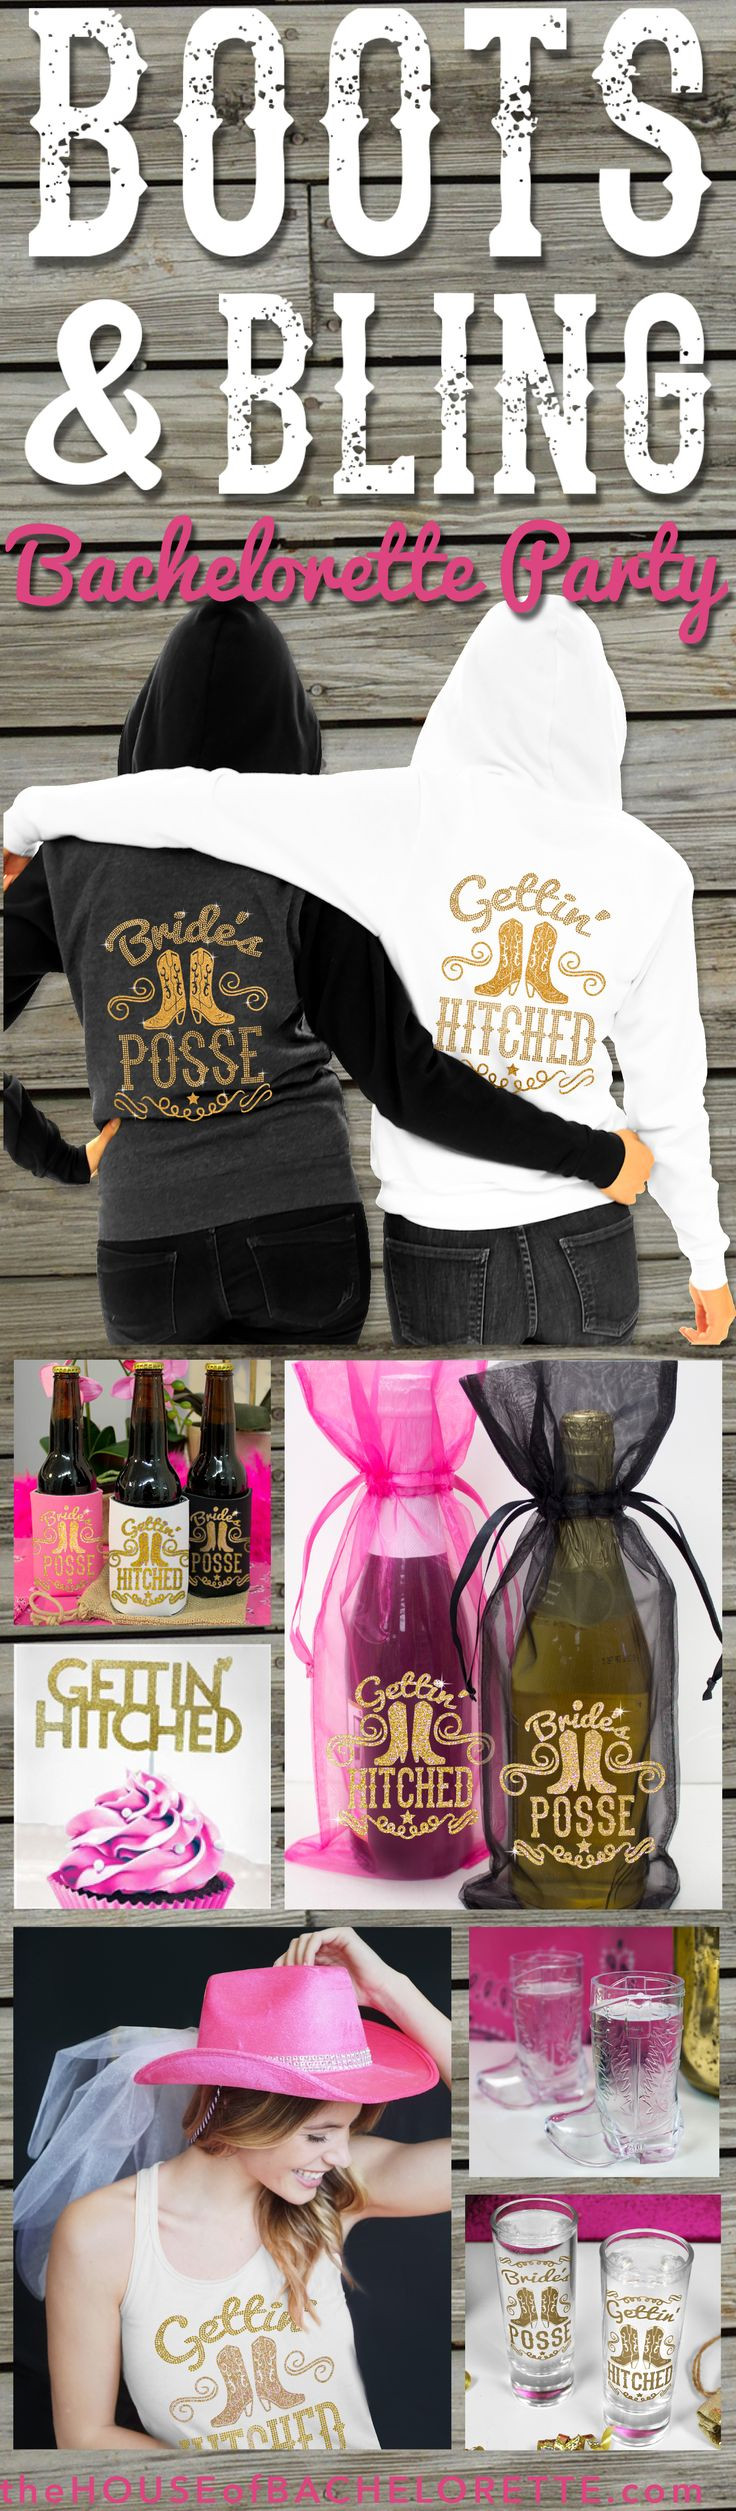 Country Bachelorette Party Ideas  109 best images about Country Western Bachelorette Party